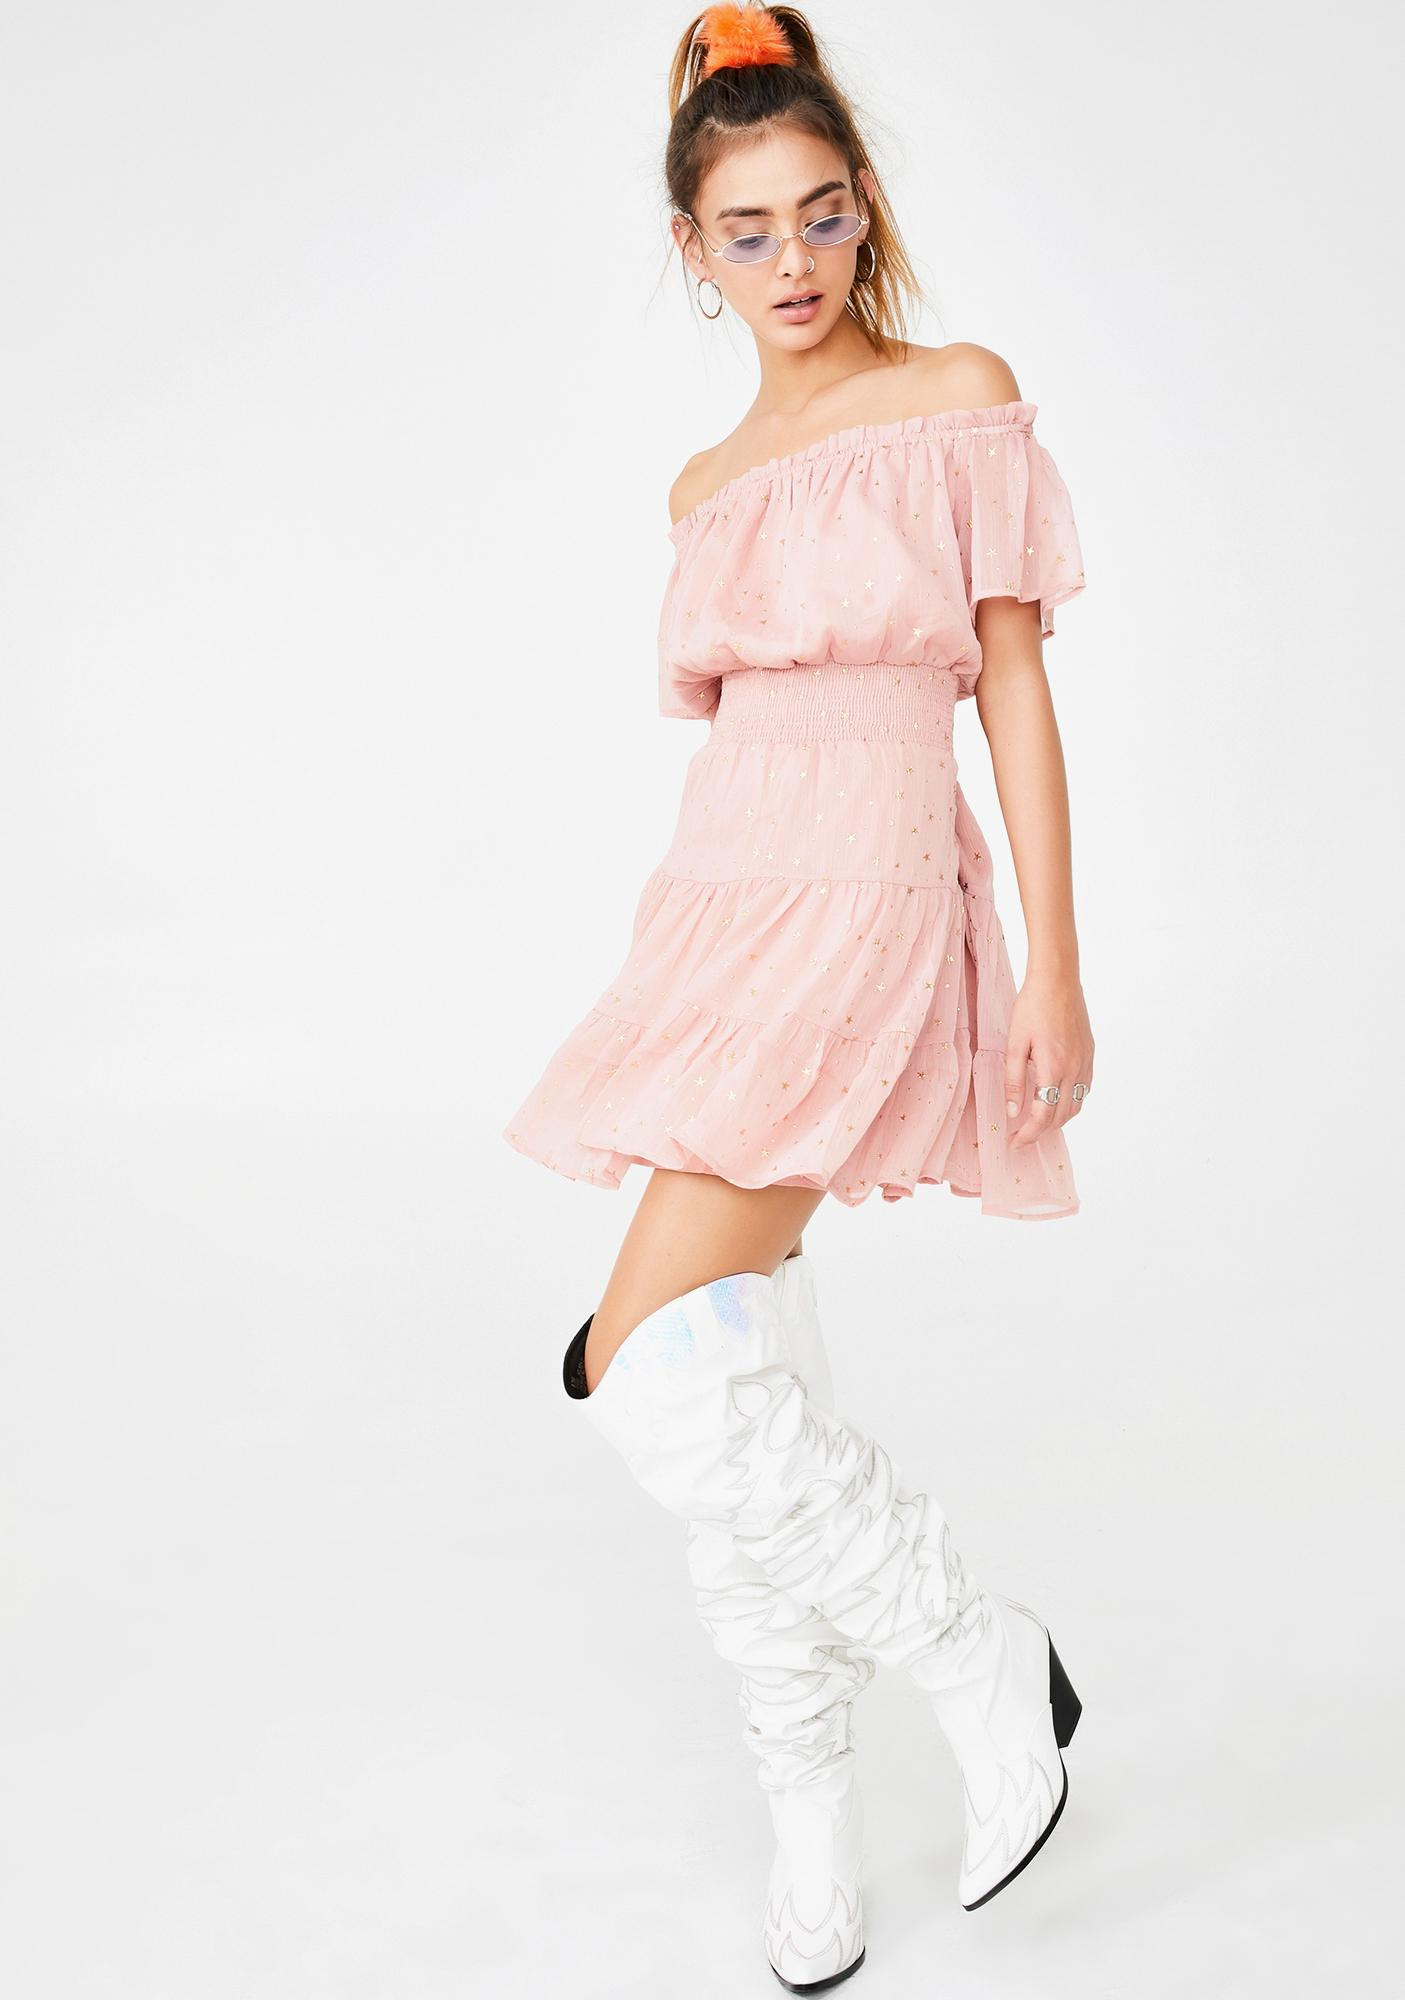 Blushing Over You Mini Dress